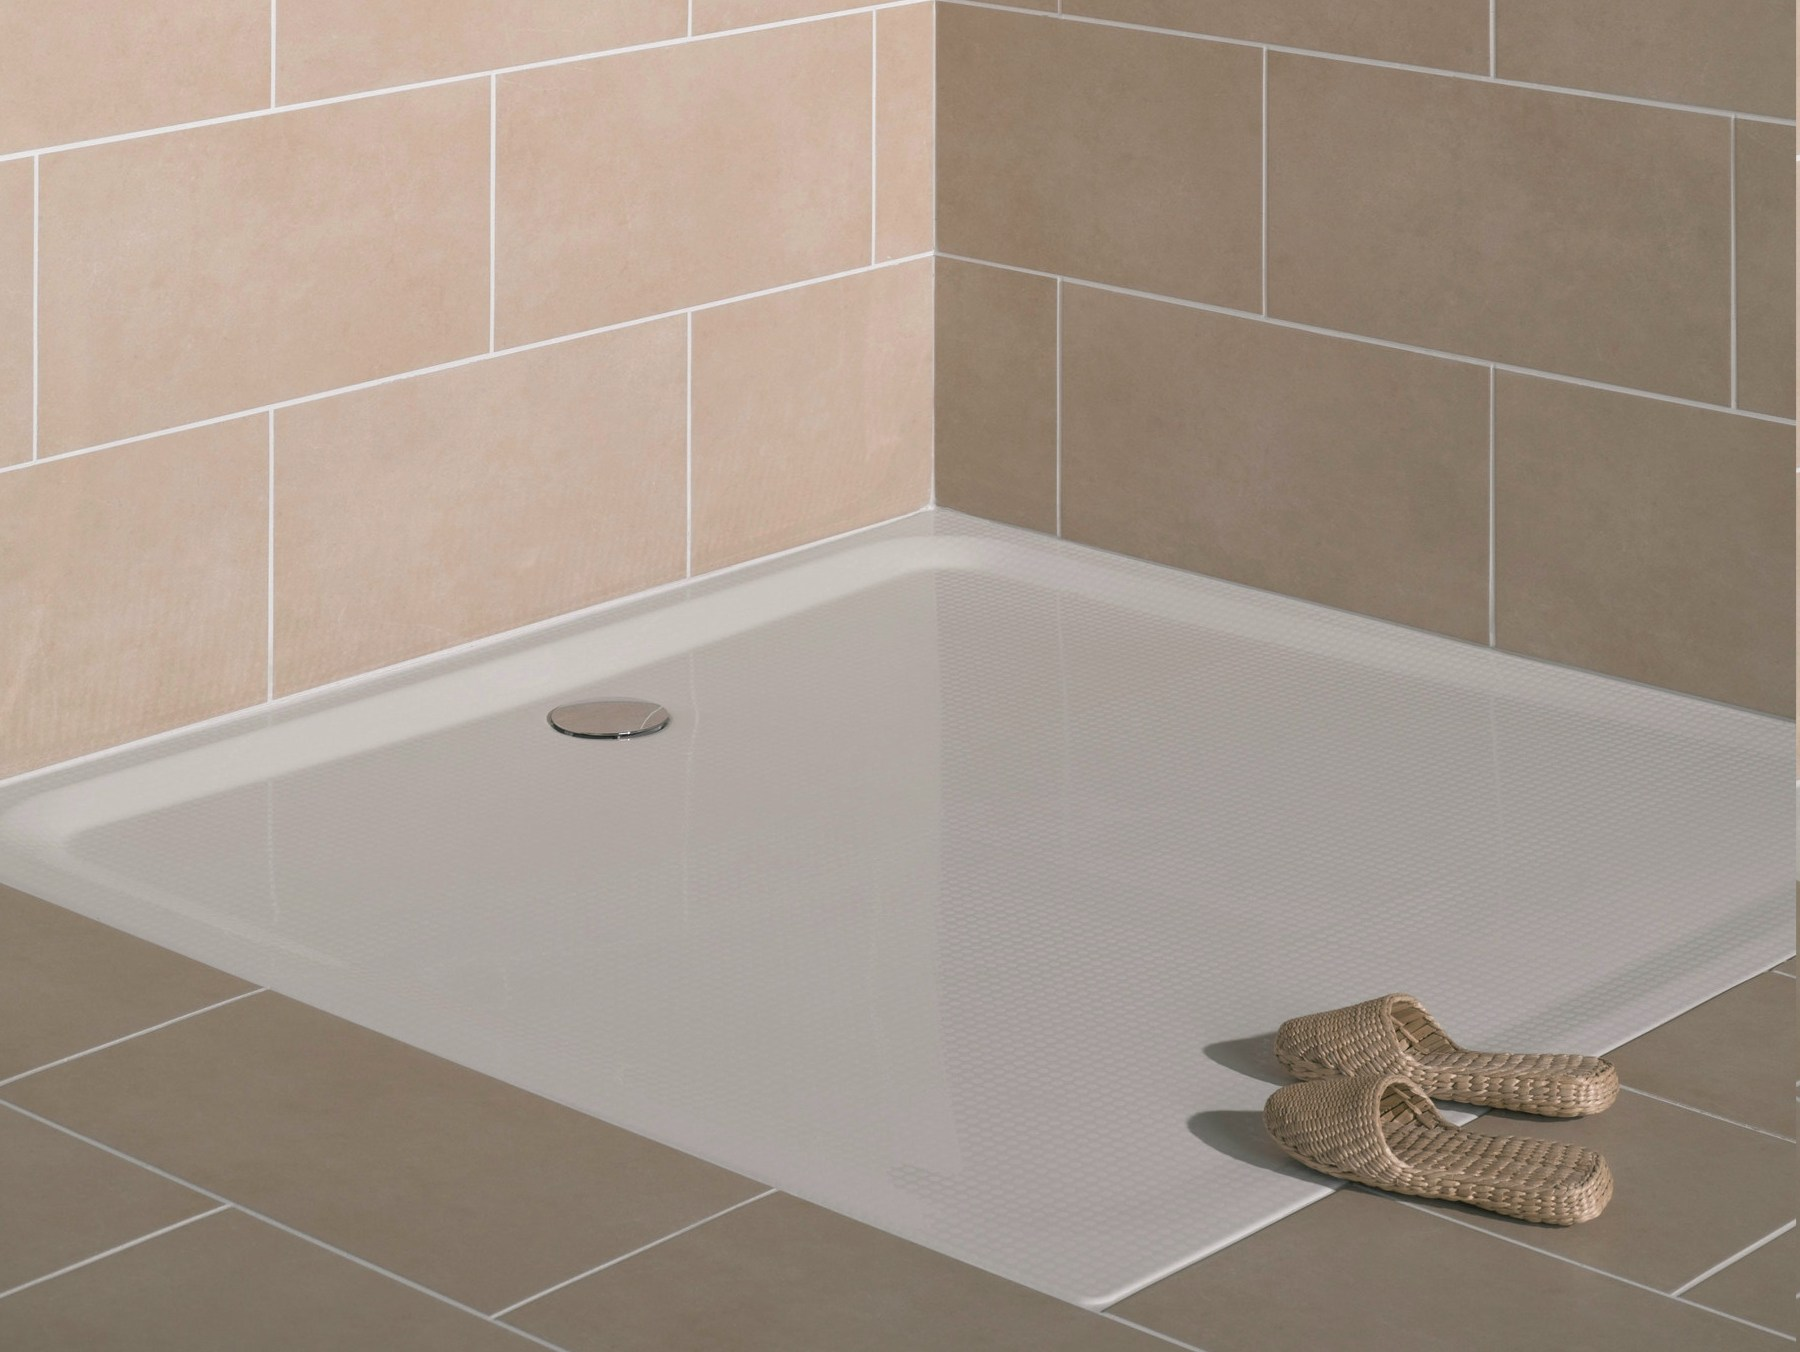 superflach square shower tray by bette. Black Bedroom Furniture Sets. Home Design Ideas